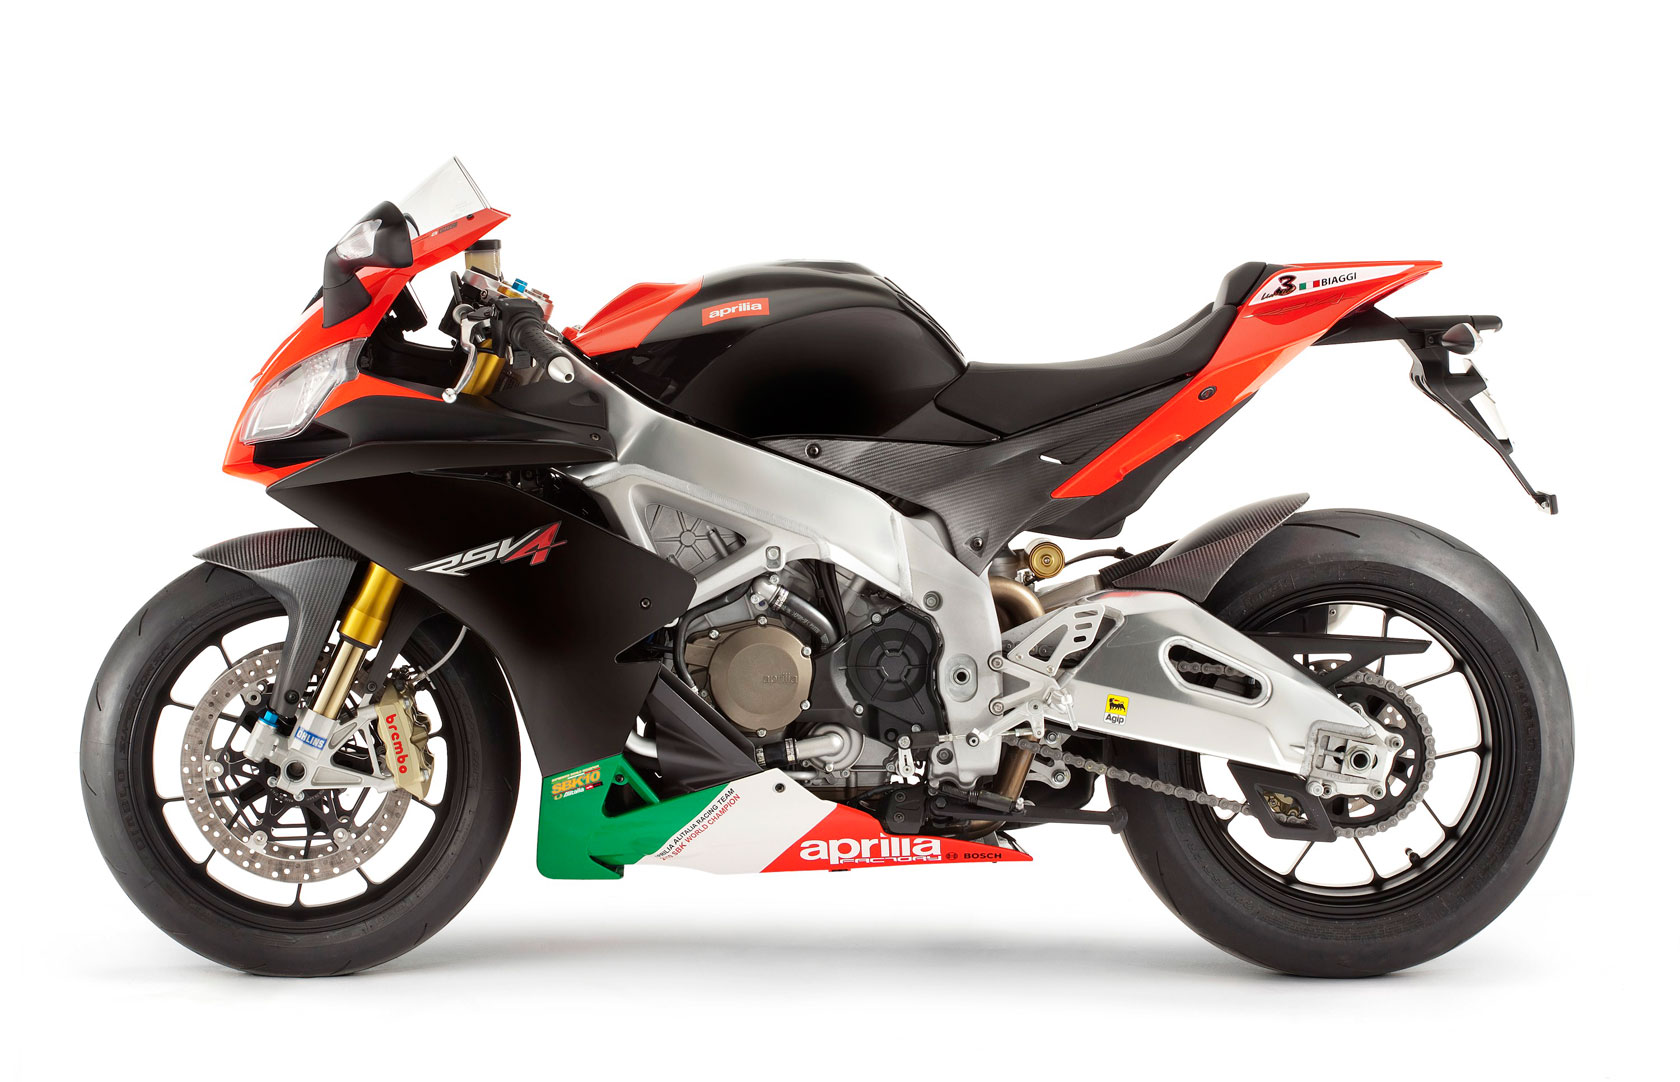 aprilia rsv4 factory aprc se specs 2010 2011 autoevolution. Black Bedroom Furniture Sets. Home Design Ideas